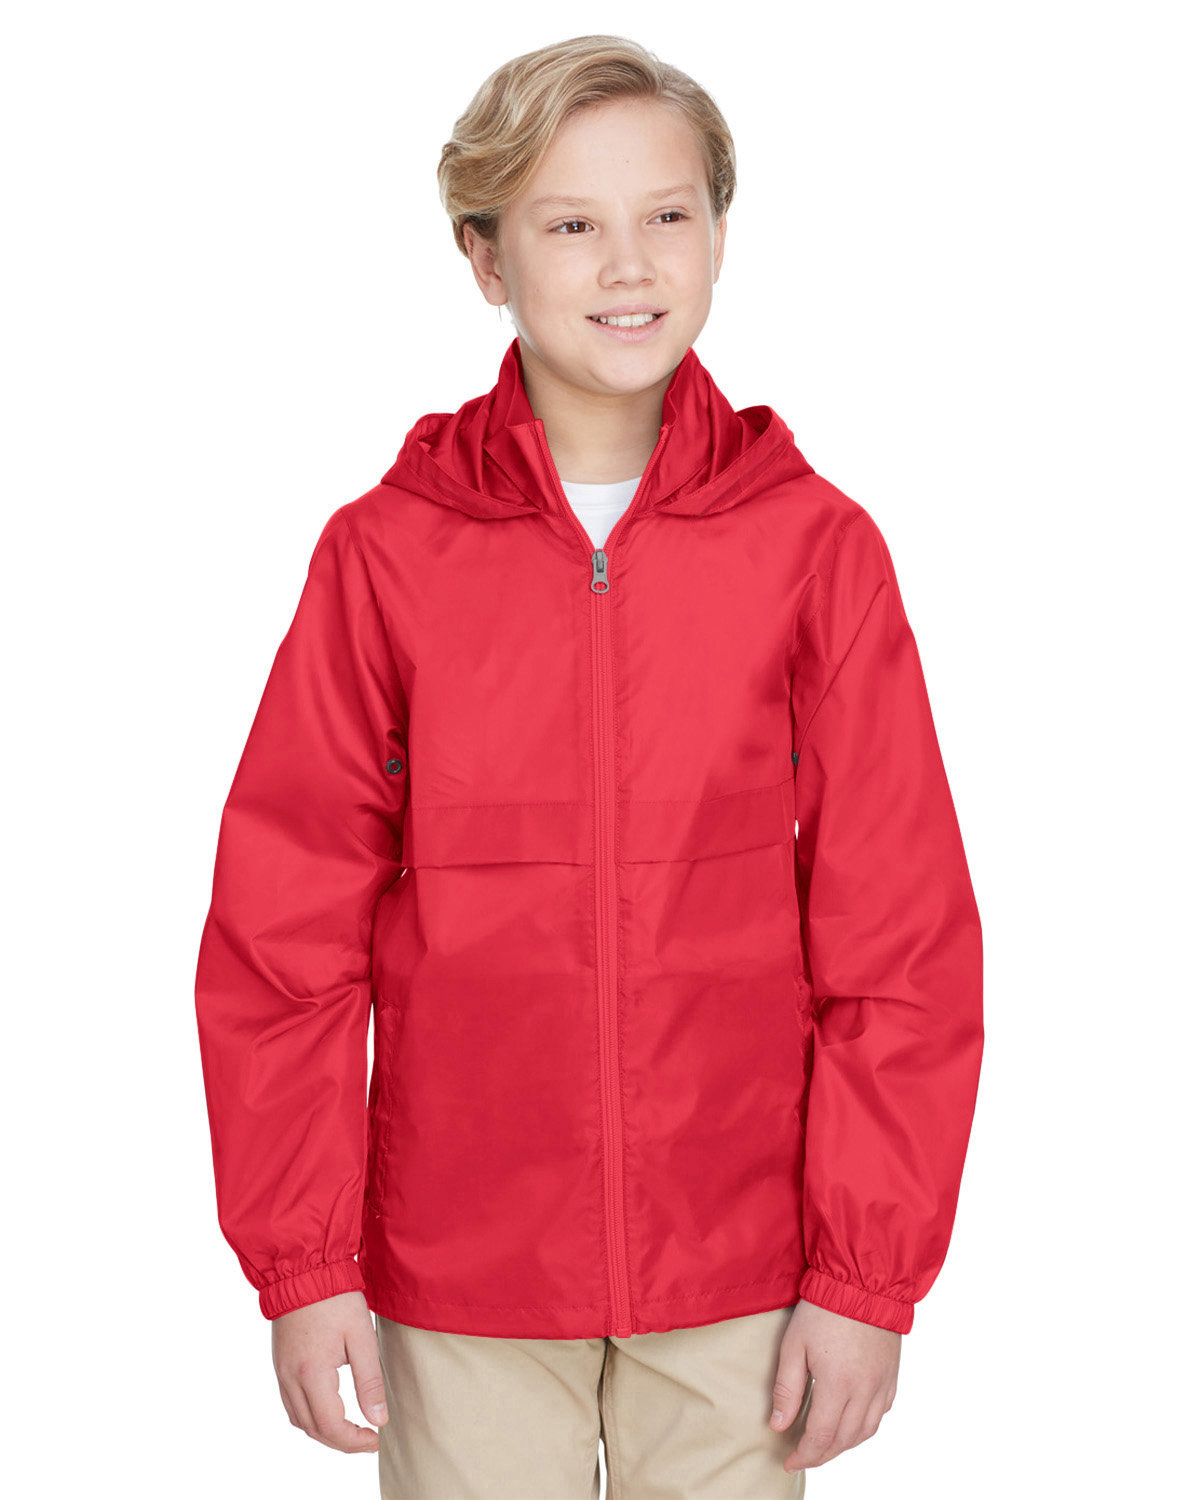 Team 365 Youth Zone Protect Lightweight Jacket SPORT RED